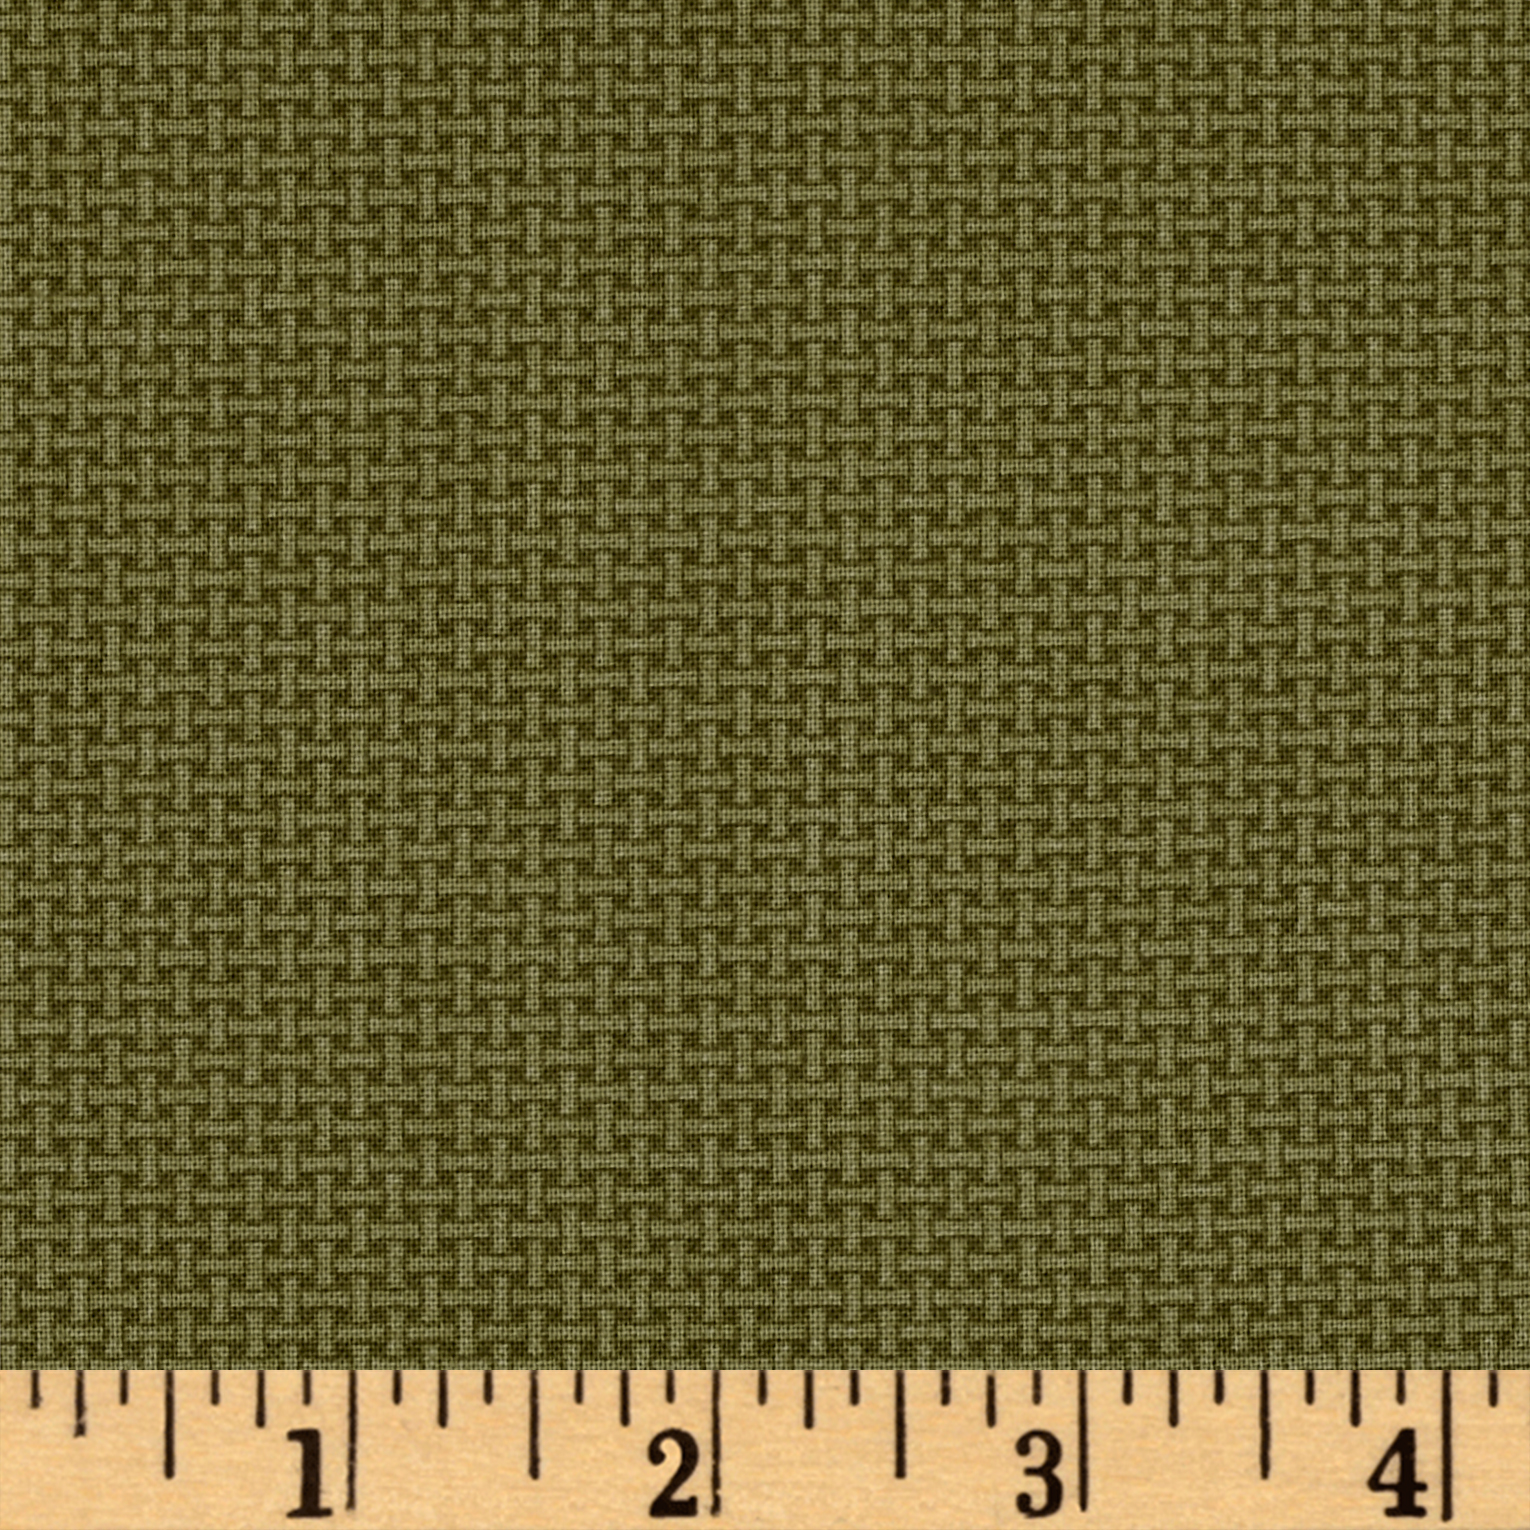 Chelsea Solid Olive Fabric by Fabri-Quilt in USA